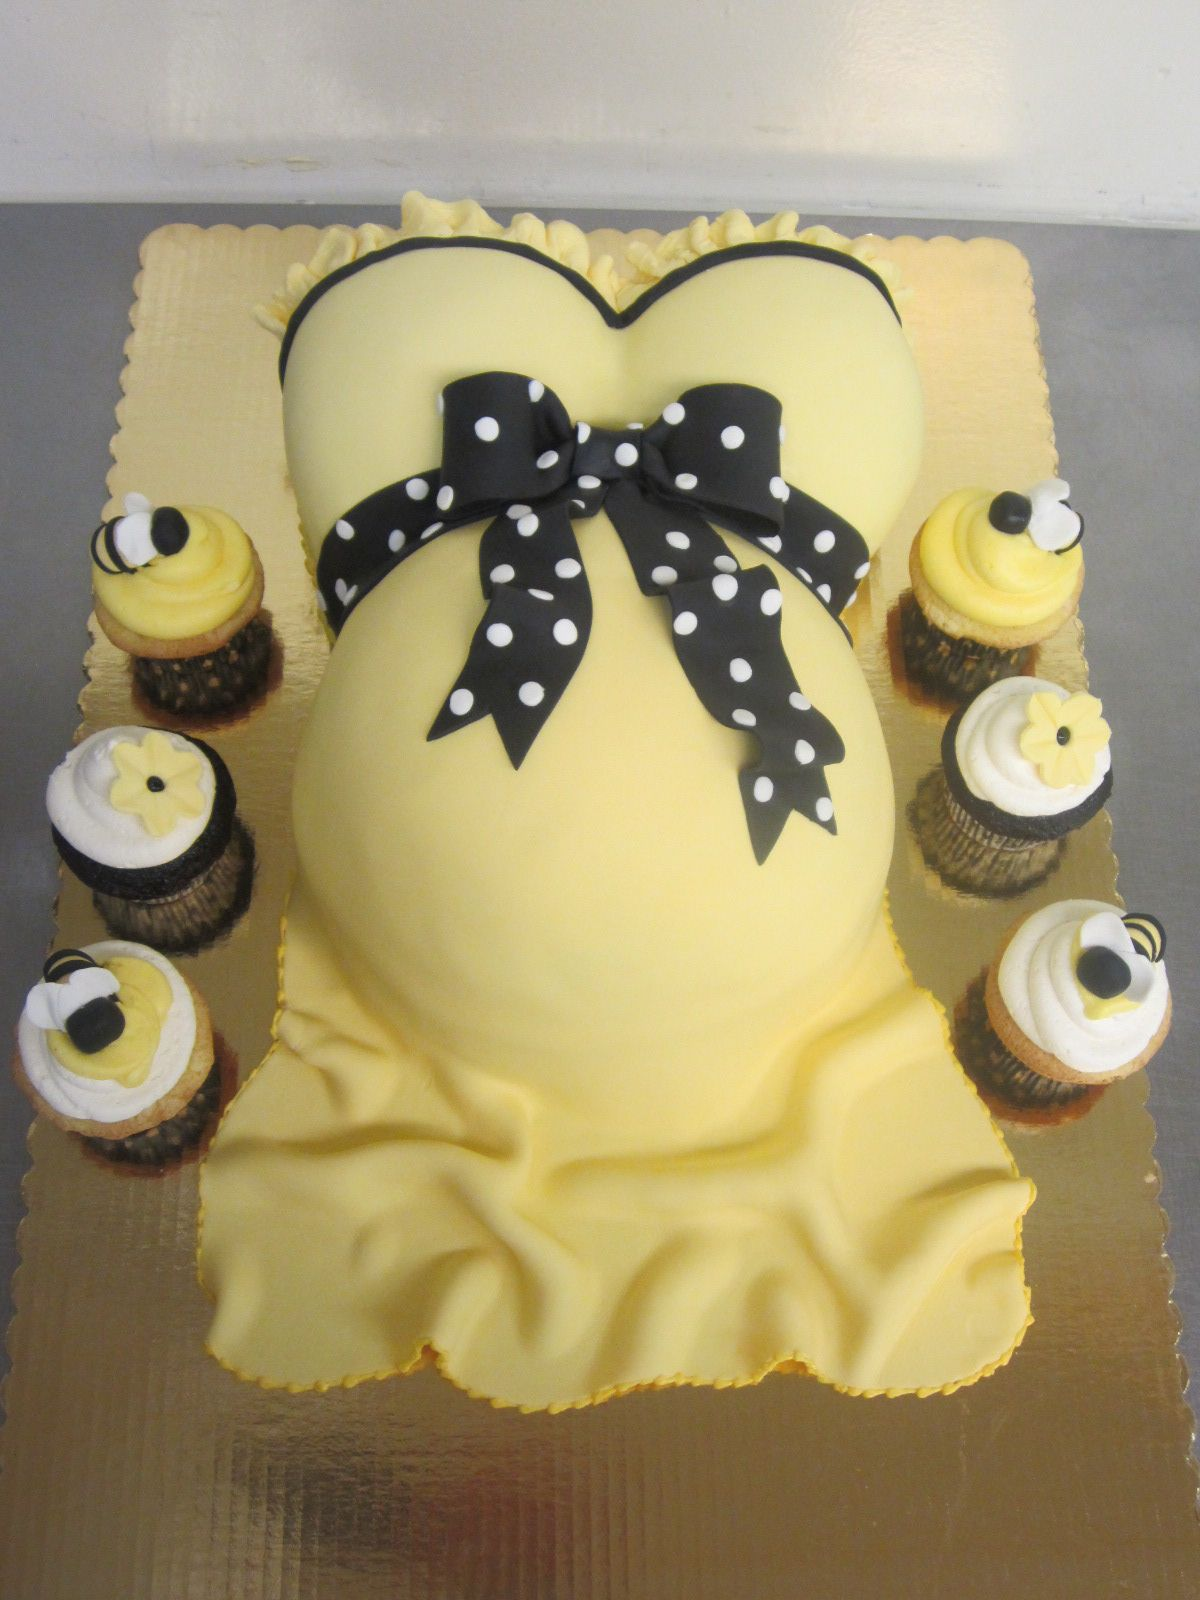 Pregnant Belly Cake with Footprint